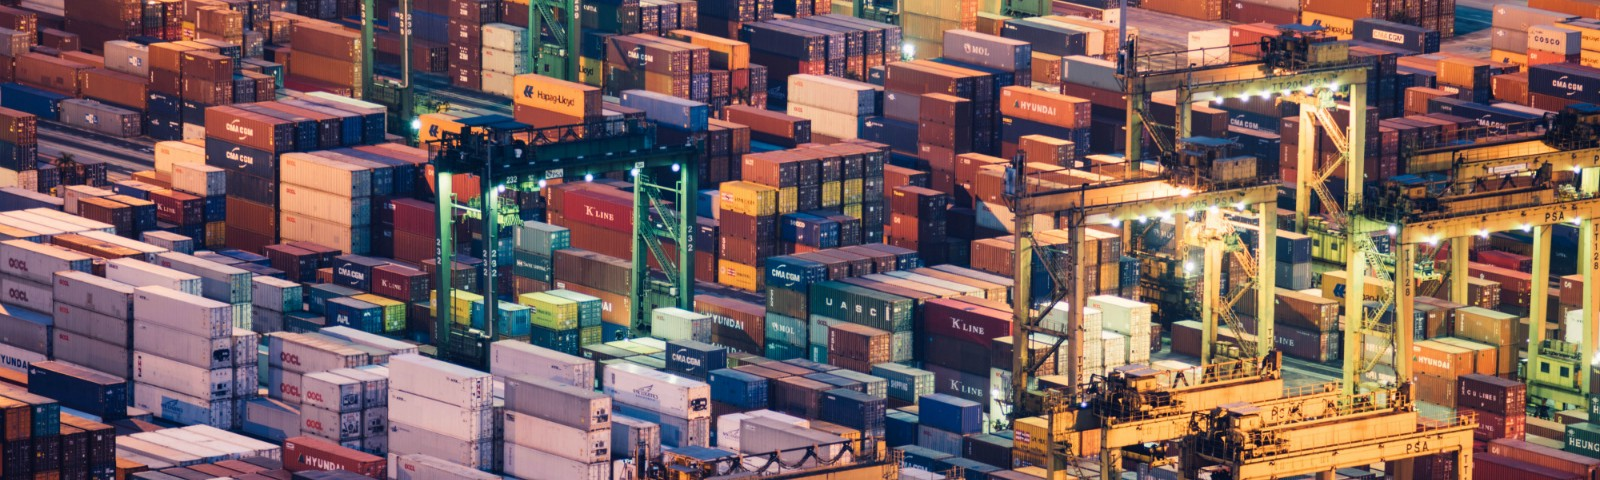 5 Ways AI Will Transform the Logistics Industry | AltexSoft